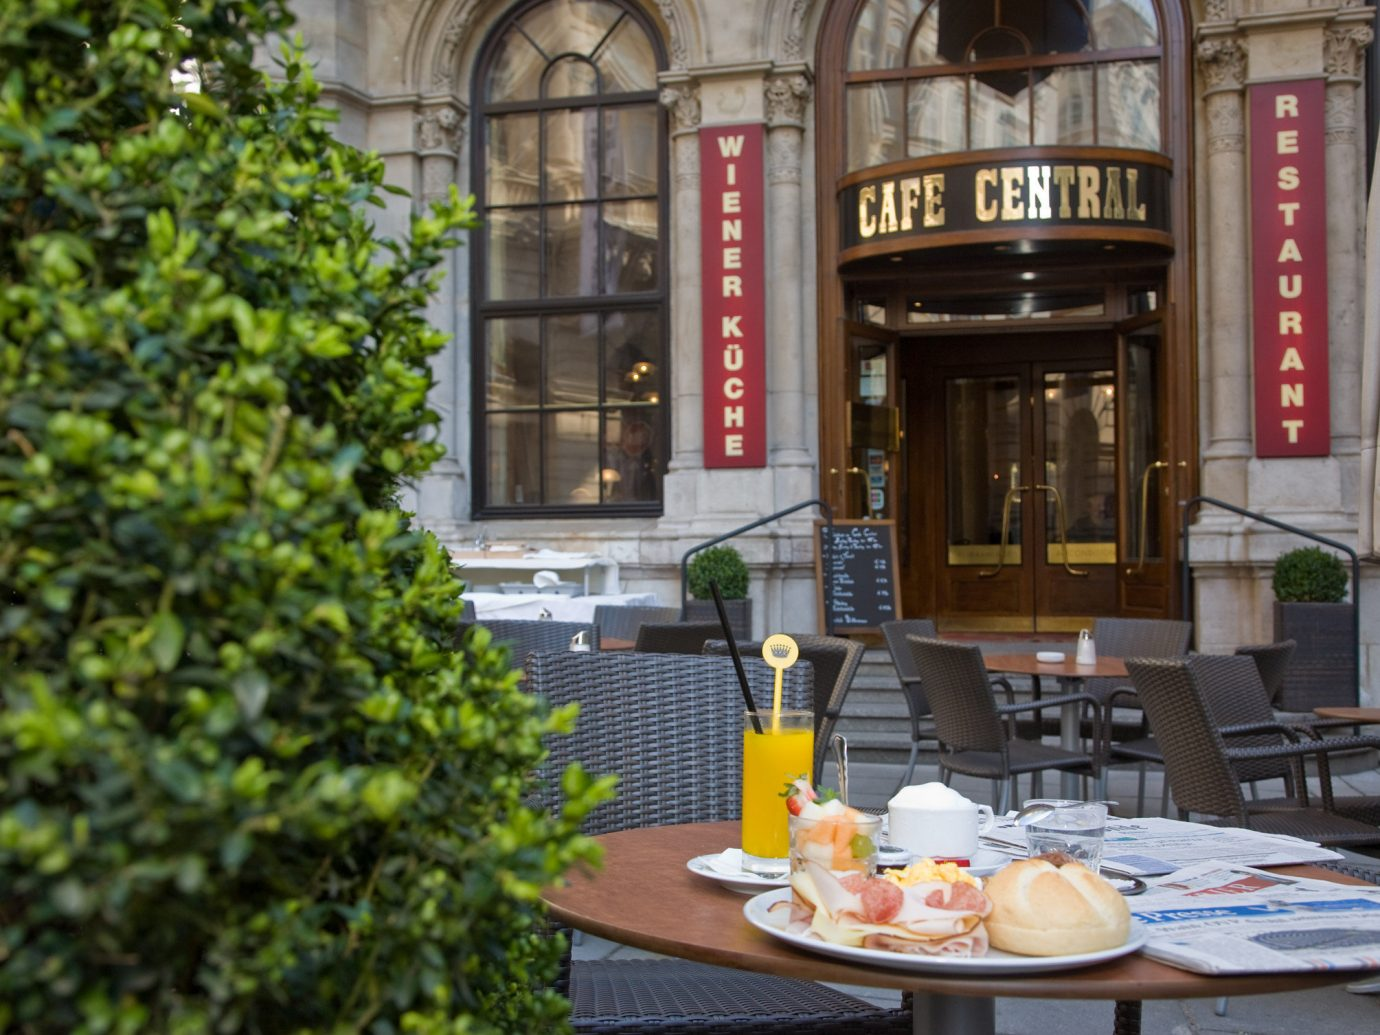 Outside breakfast at Cafe Central in Vienna